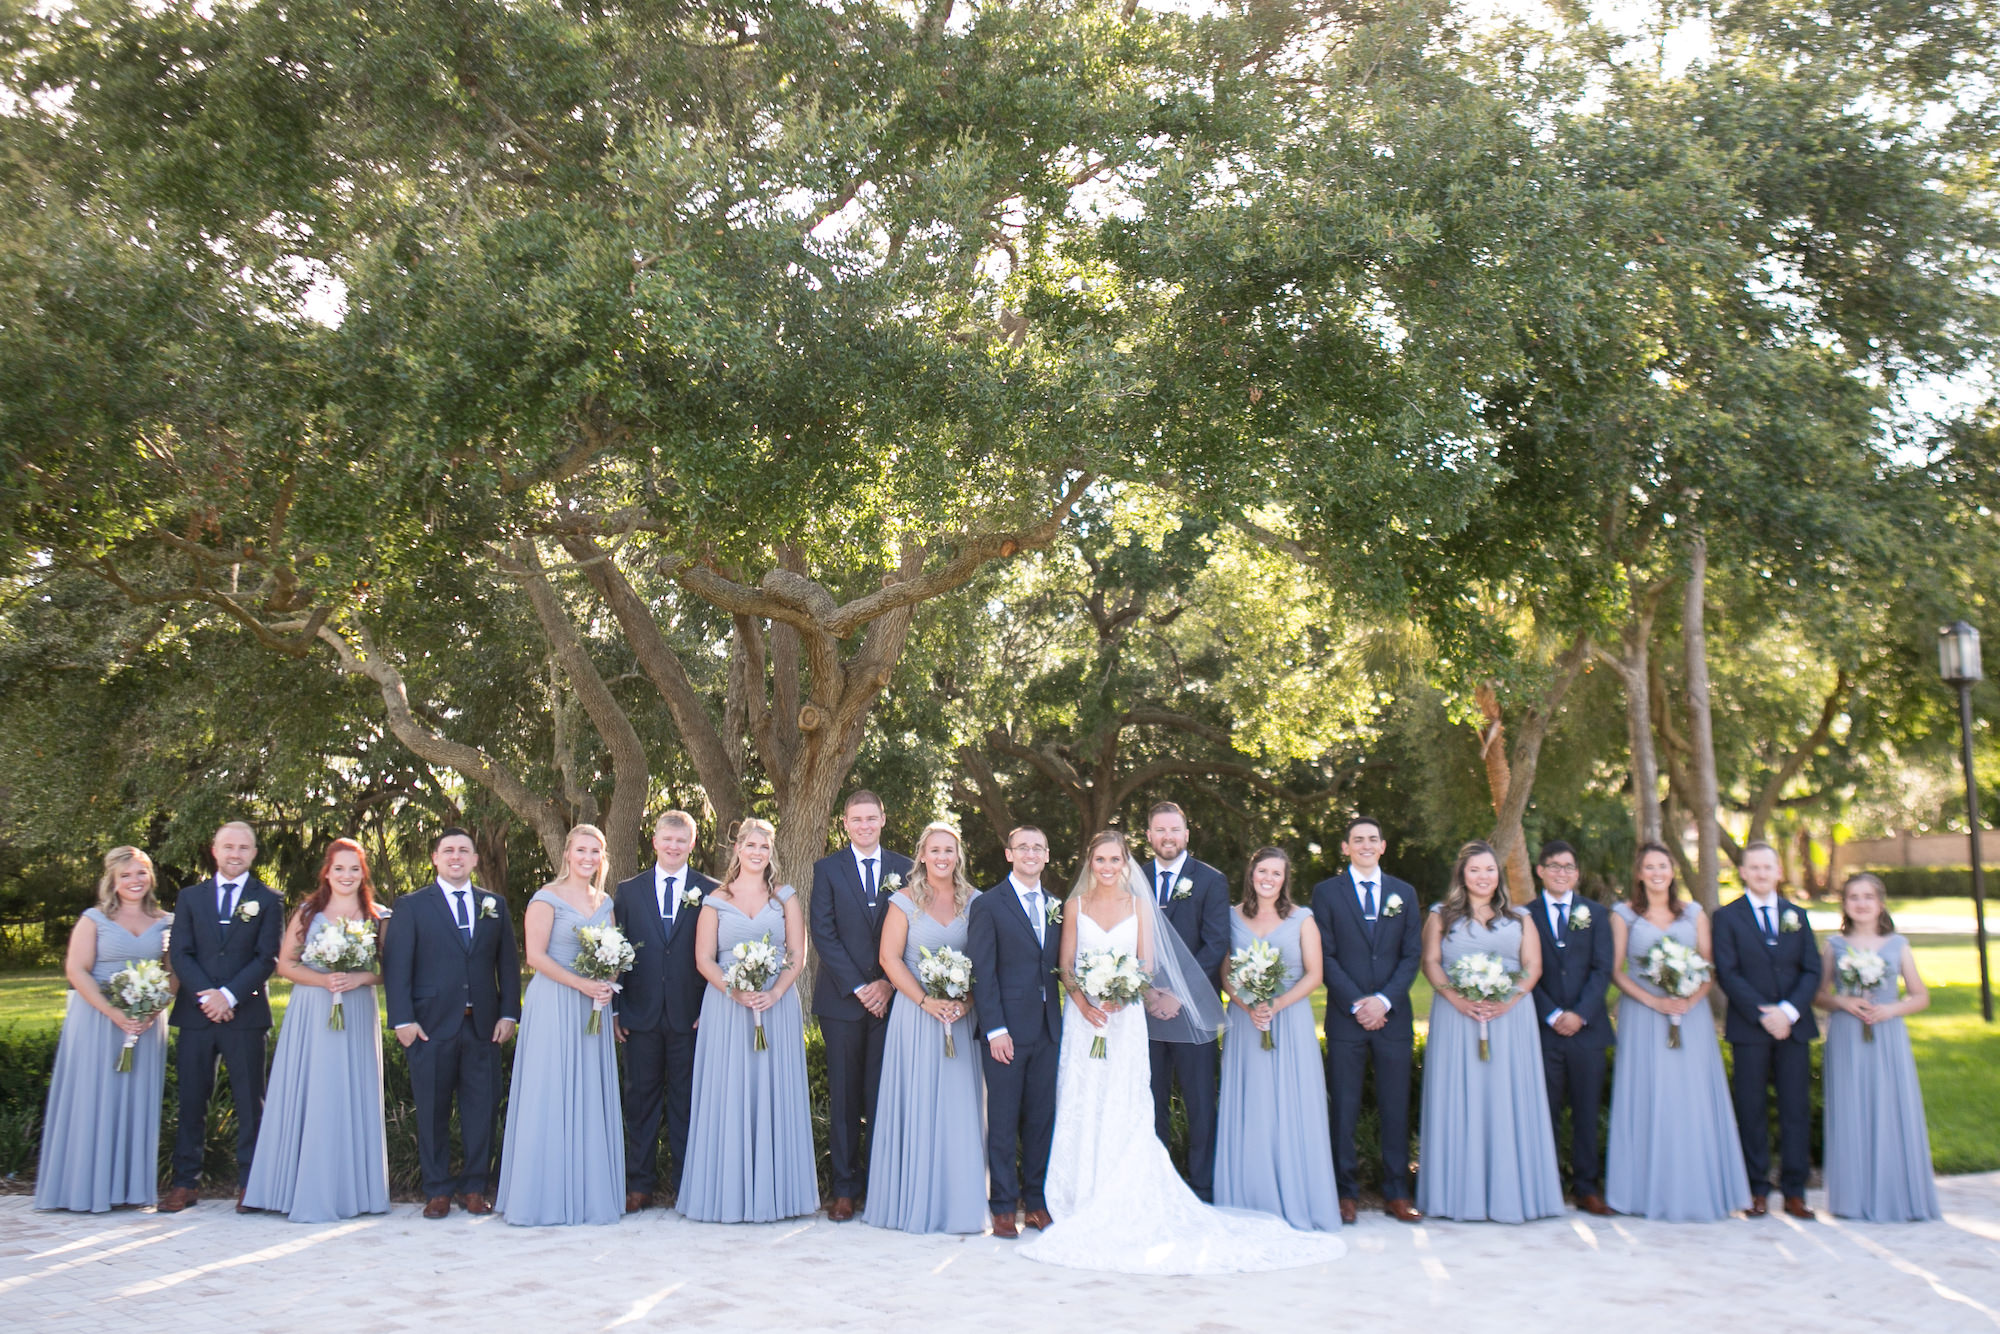 Bridesmaids in Dusty Blue Matching Dresses, Groomsmen in Blue Suits Wedding Party Portrait   Tampa Bay Wedding Photographer Carrie Wildes Photography   Wedding Planner Love Lee Lane